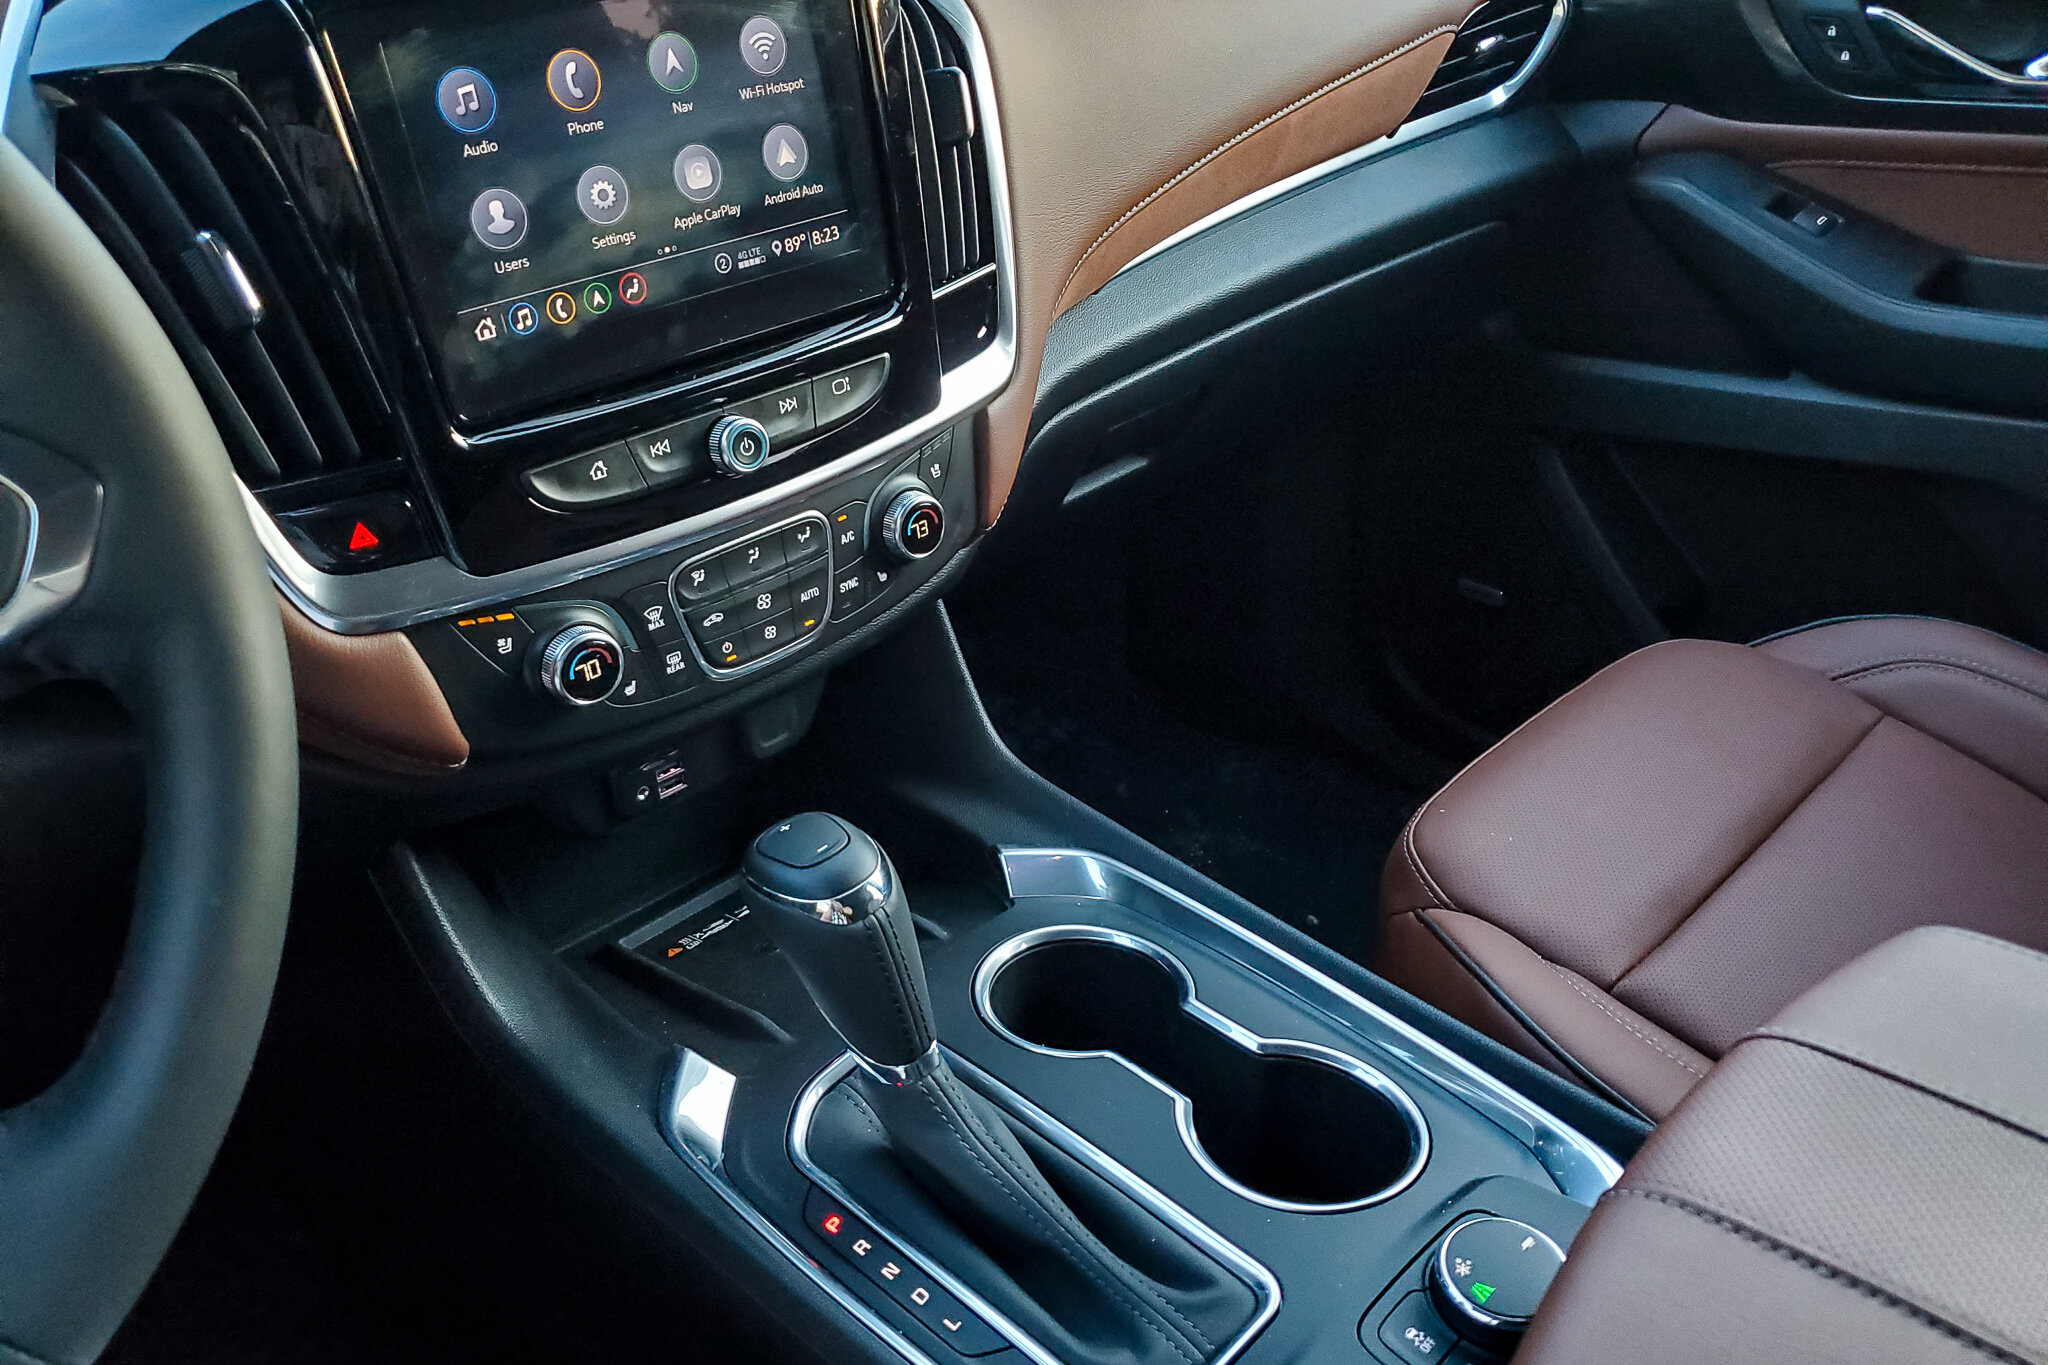 The wireless phone charging station inside the 2019 Chevy Traverse, just under the temperature controls (c) Anna Lanfreschi